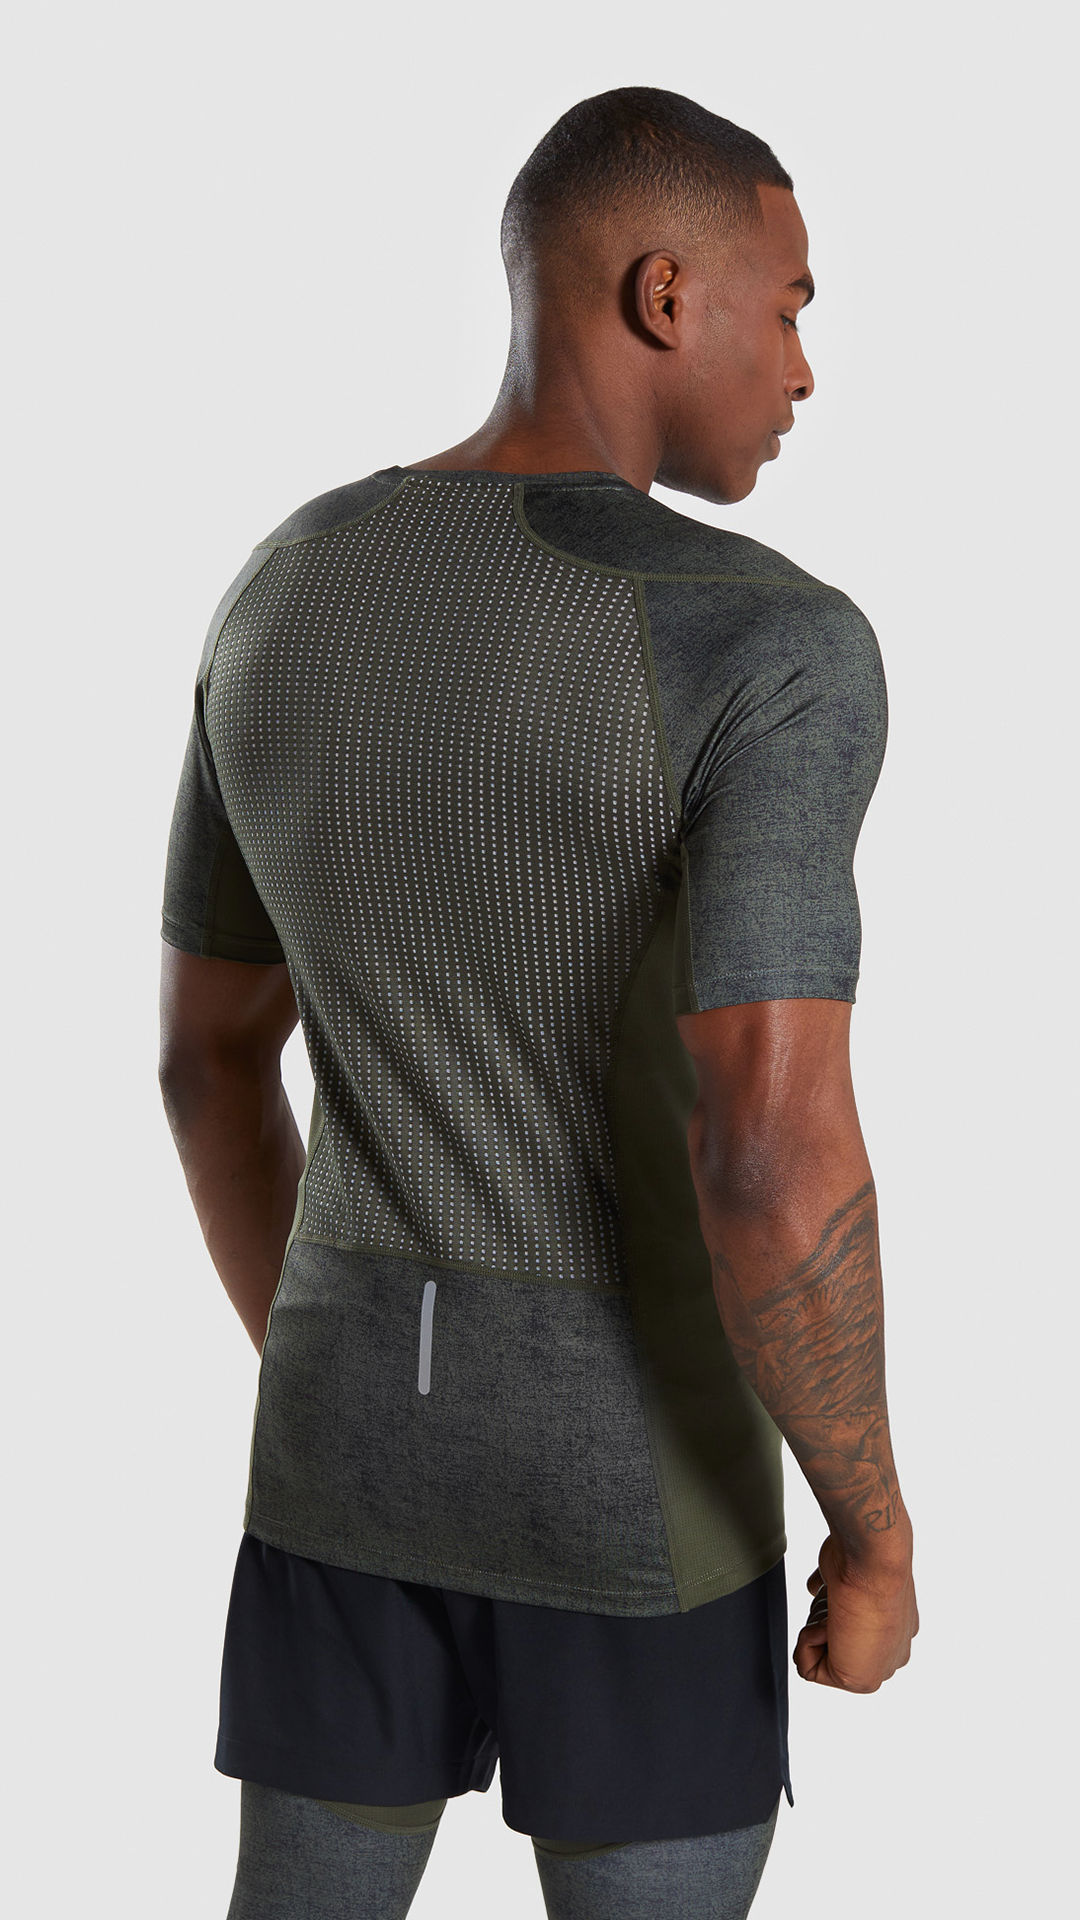 e6850b1b The Hybrid Base Layer Short Sleeve T-shirt, Woodland Green. Join forces.